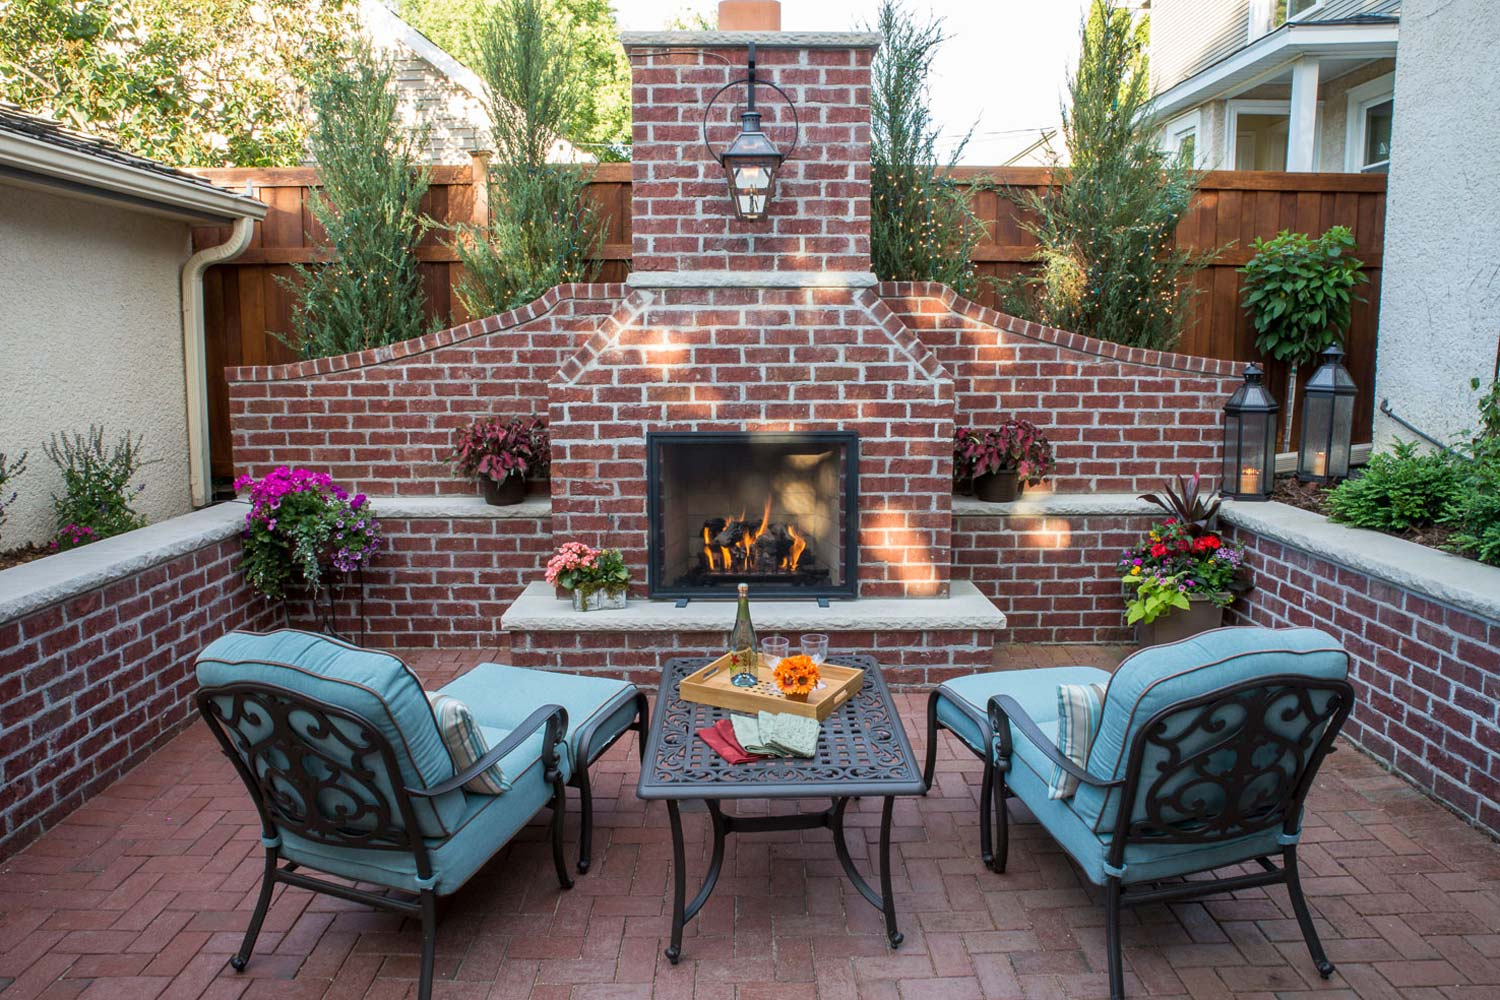 Centered on a hand-build re brick fireplace and two aqua blue outdoor chez lounge chairs